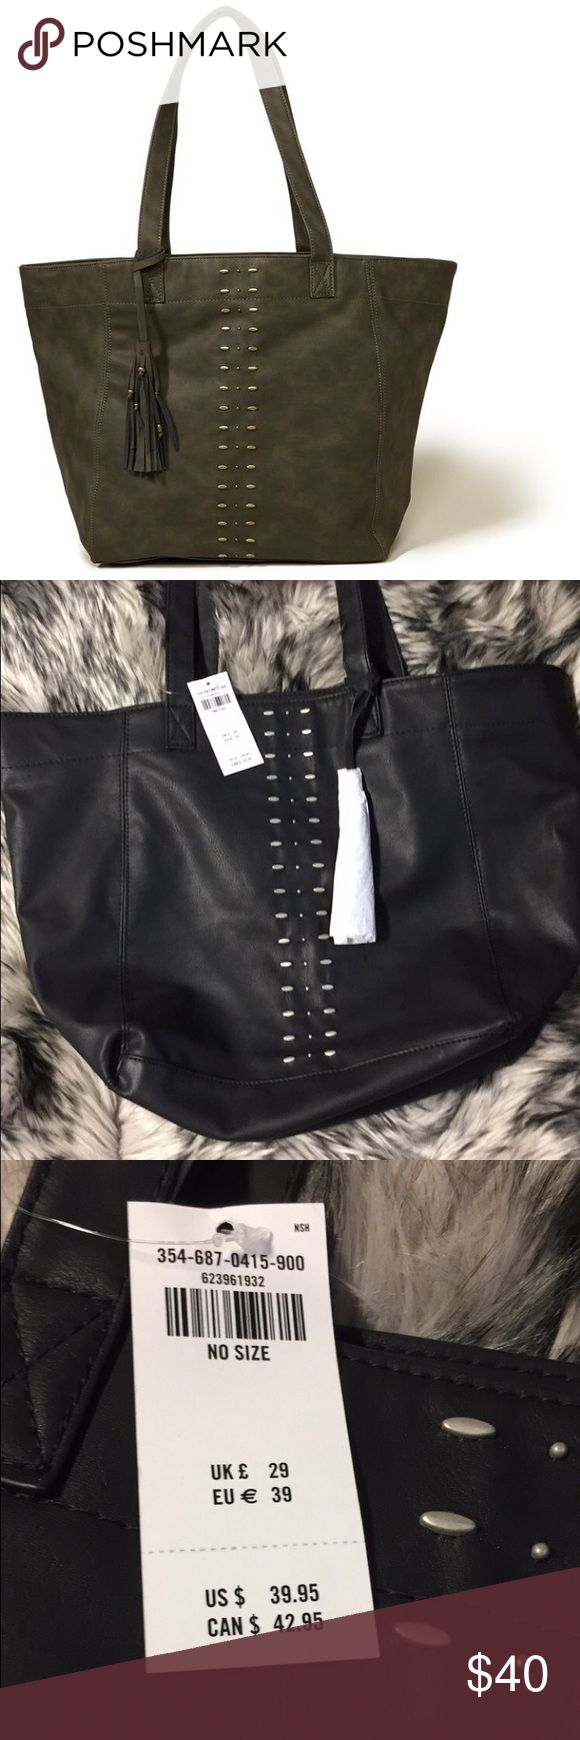 Vegan studded hollister tote This is so cute and stylish! It can be edgy or sweet, dressed up or dressed down. It's brand new with tags and sold out! Hollister Bags Totes